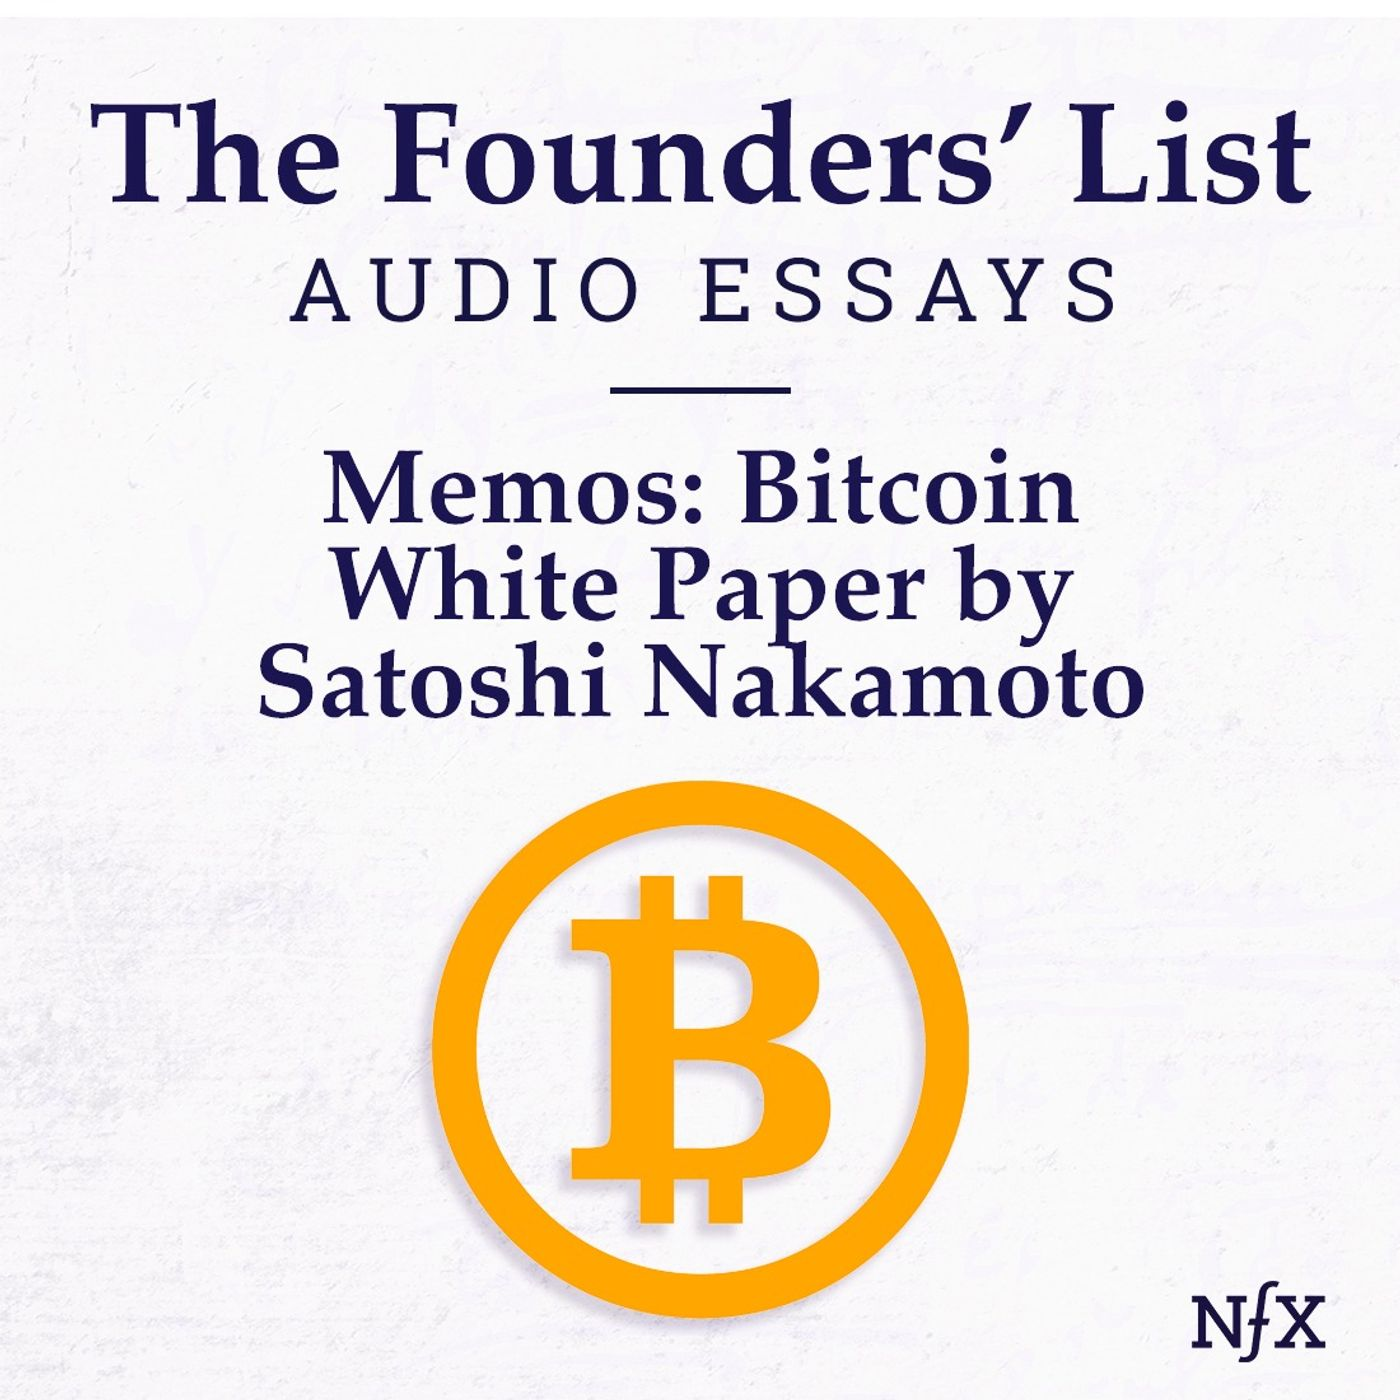 The Founders' List: The Bitcoin White Paper by Satoshi Nakamoto